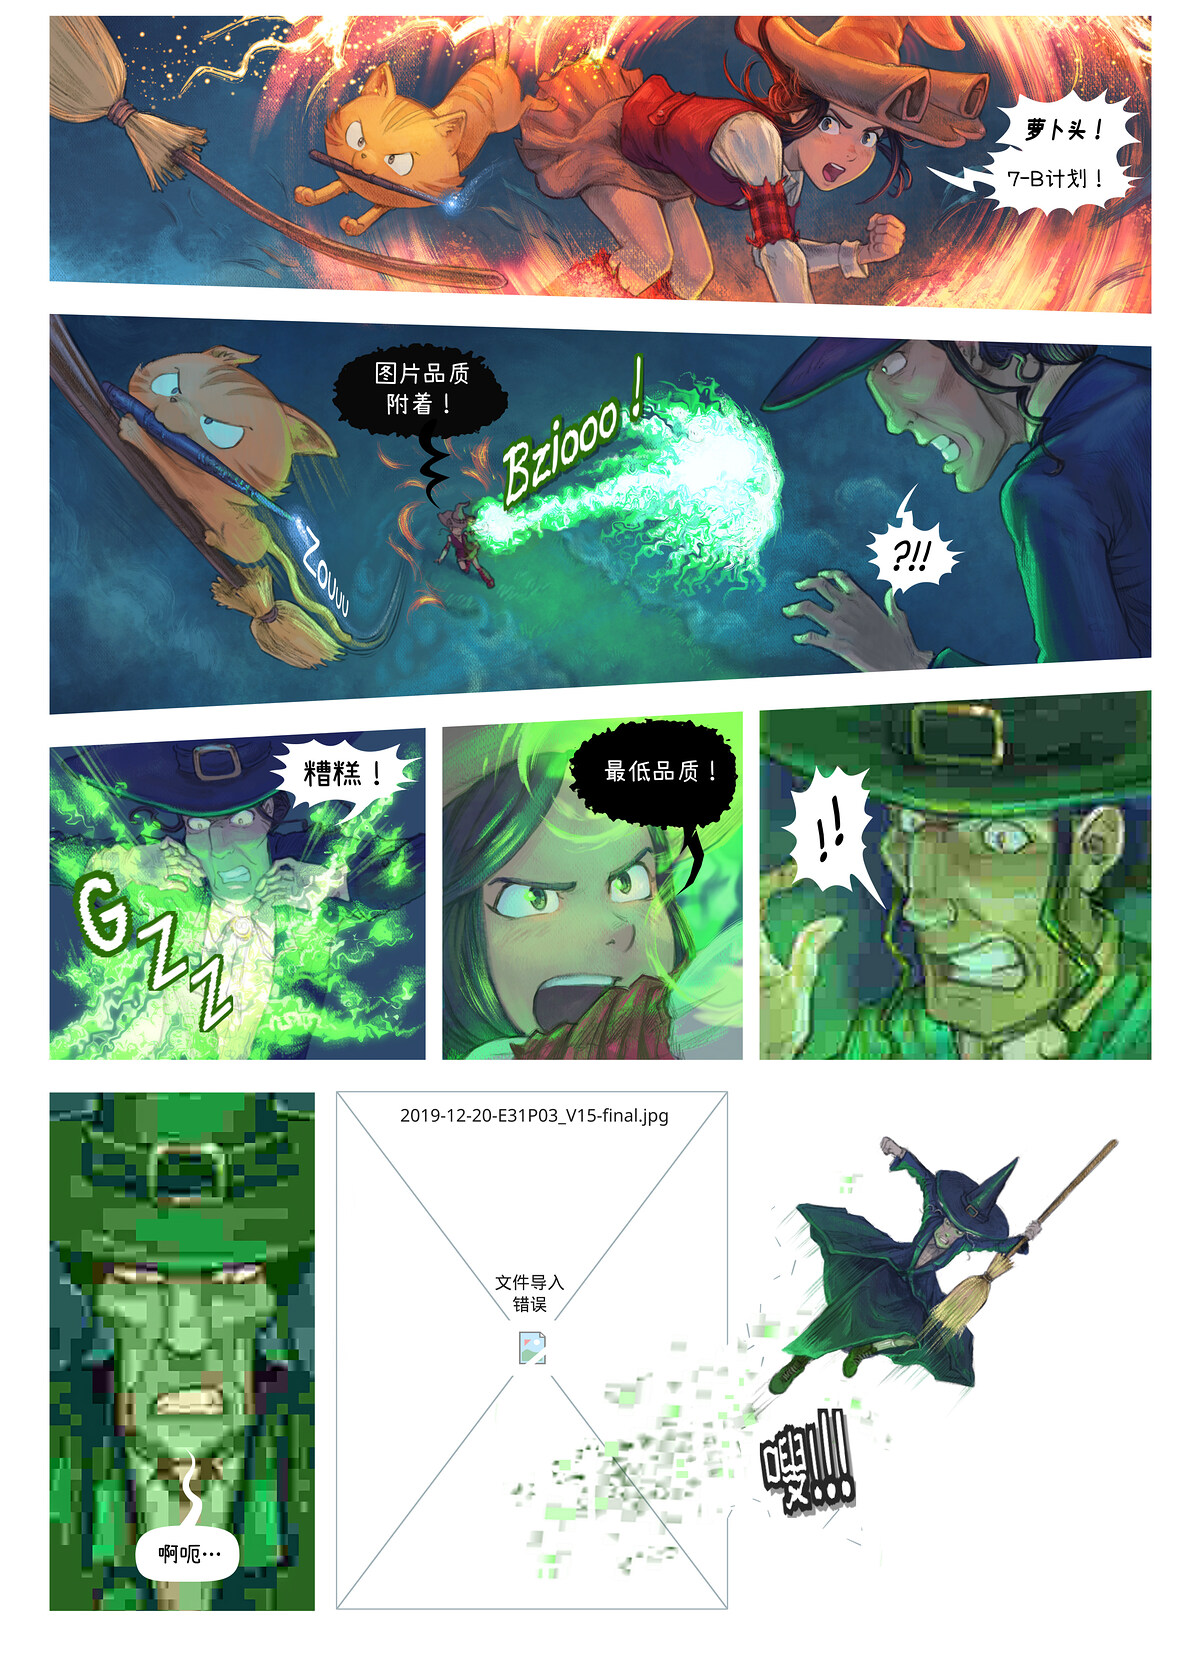 A webcomic page of Pepper&Carrot, 漫画全集 31 [cn], 页面 3